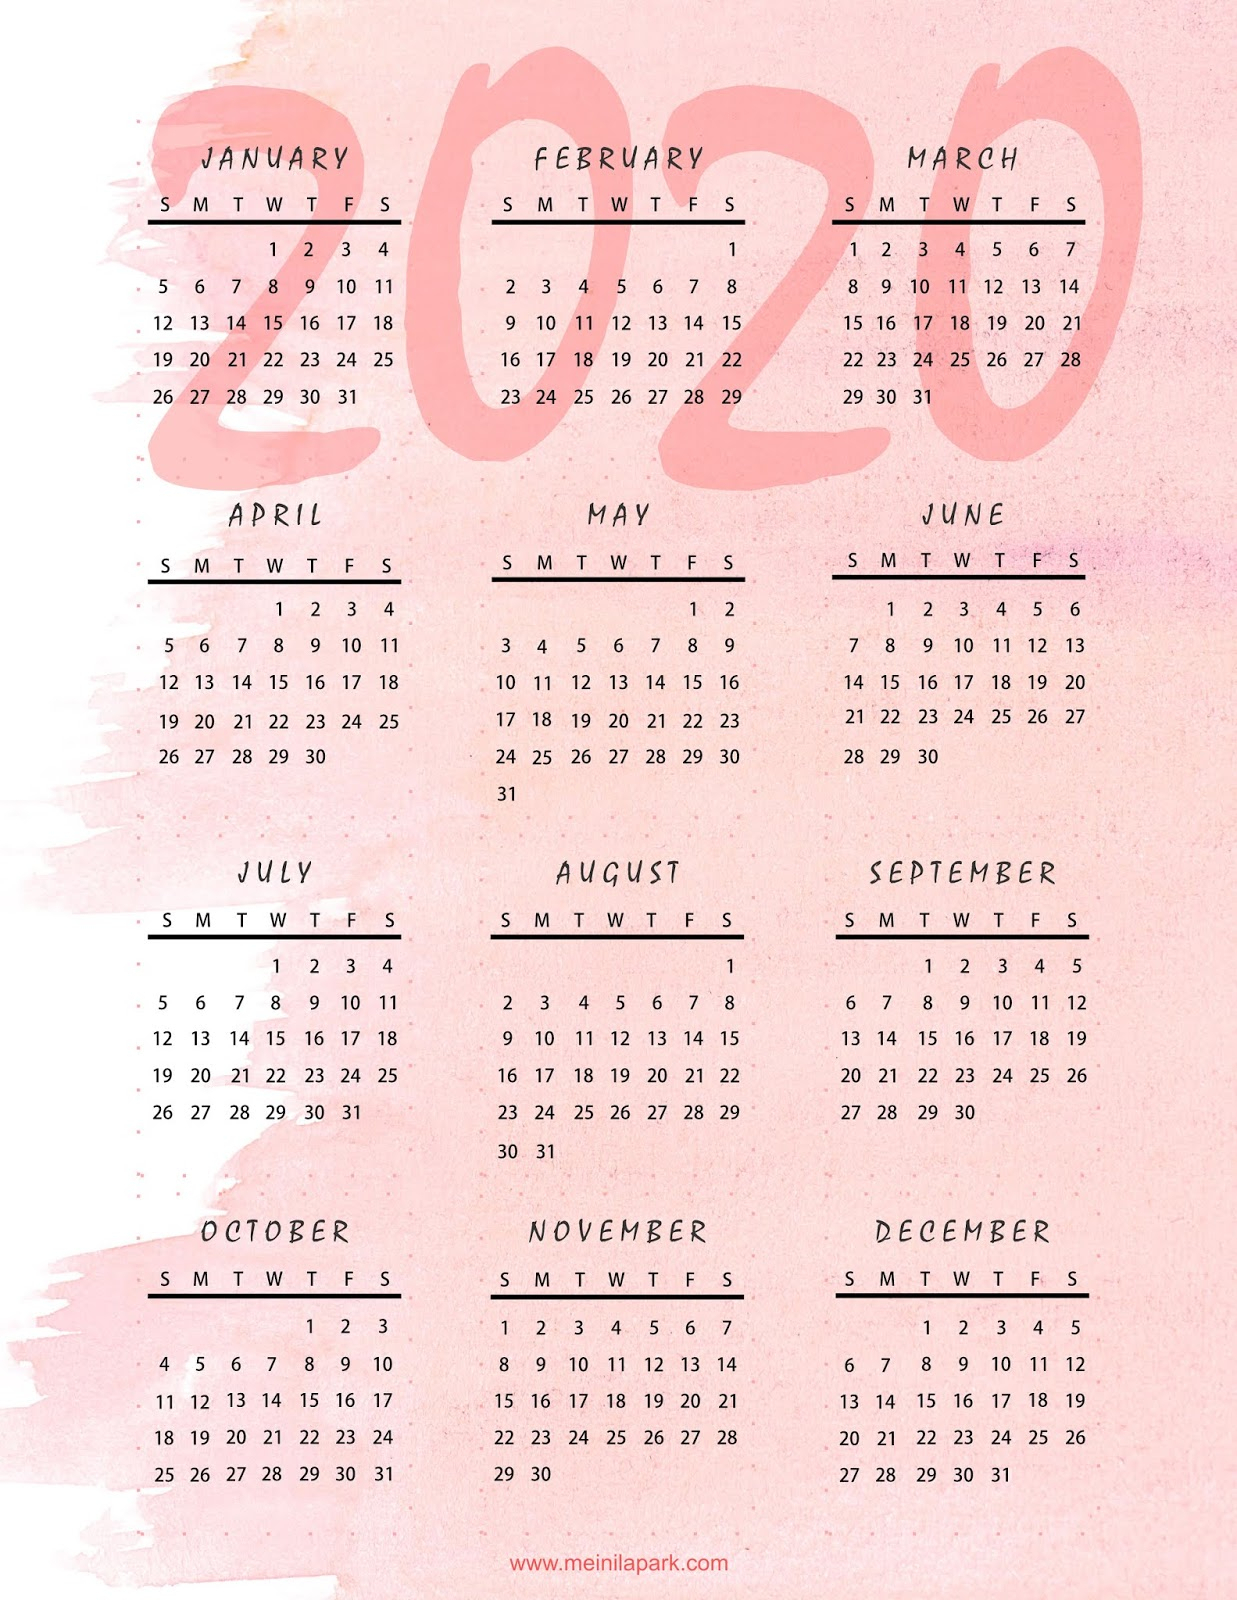 Meinlilapark: Thinking Ahead: Printable 2020 Calendar In